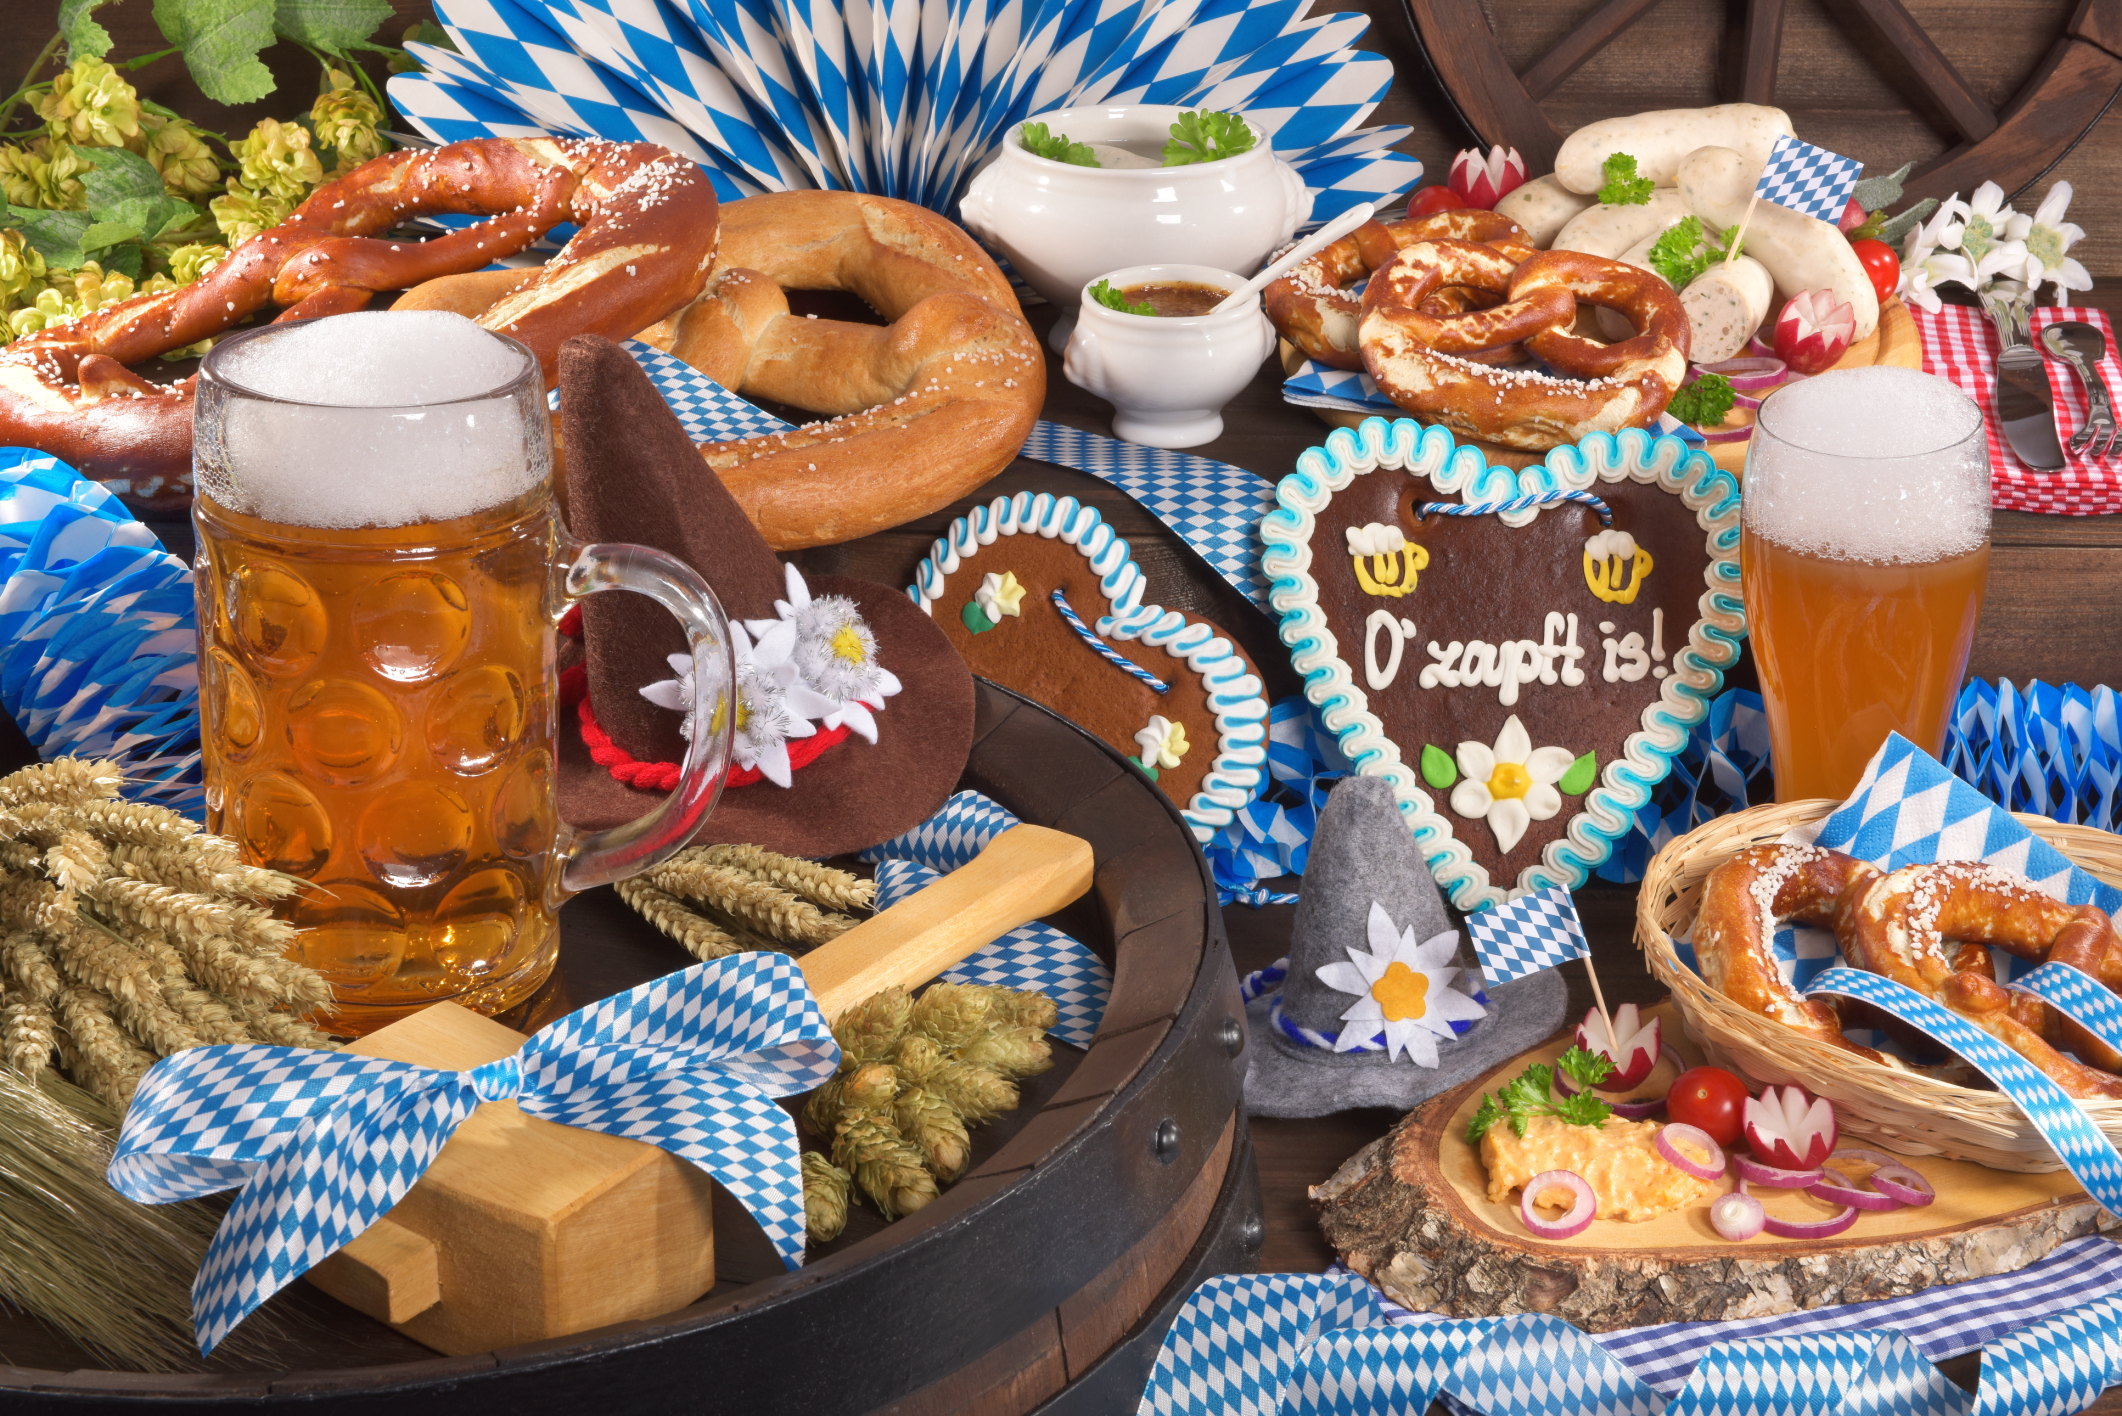 ThinkstockPhotos 487404268 Oktoberfest Checklist: Everything You Need to Host a Party